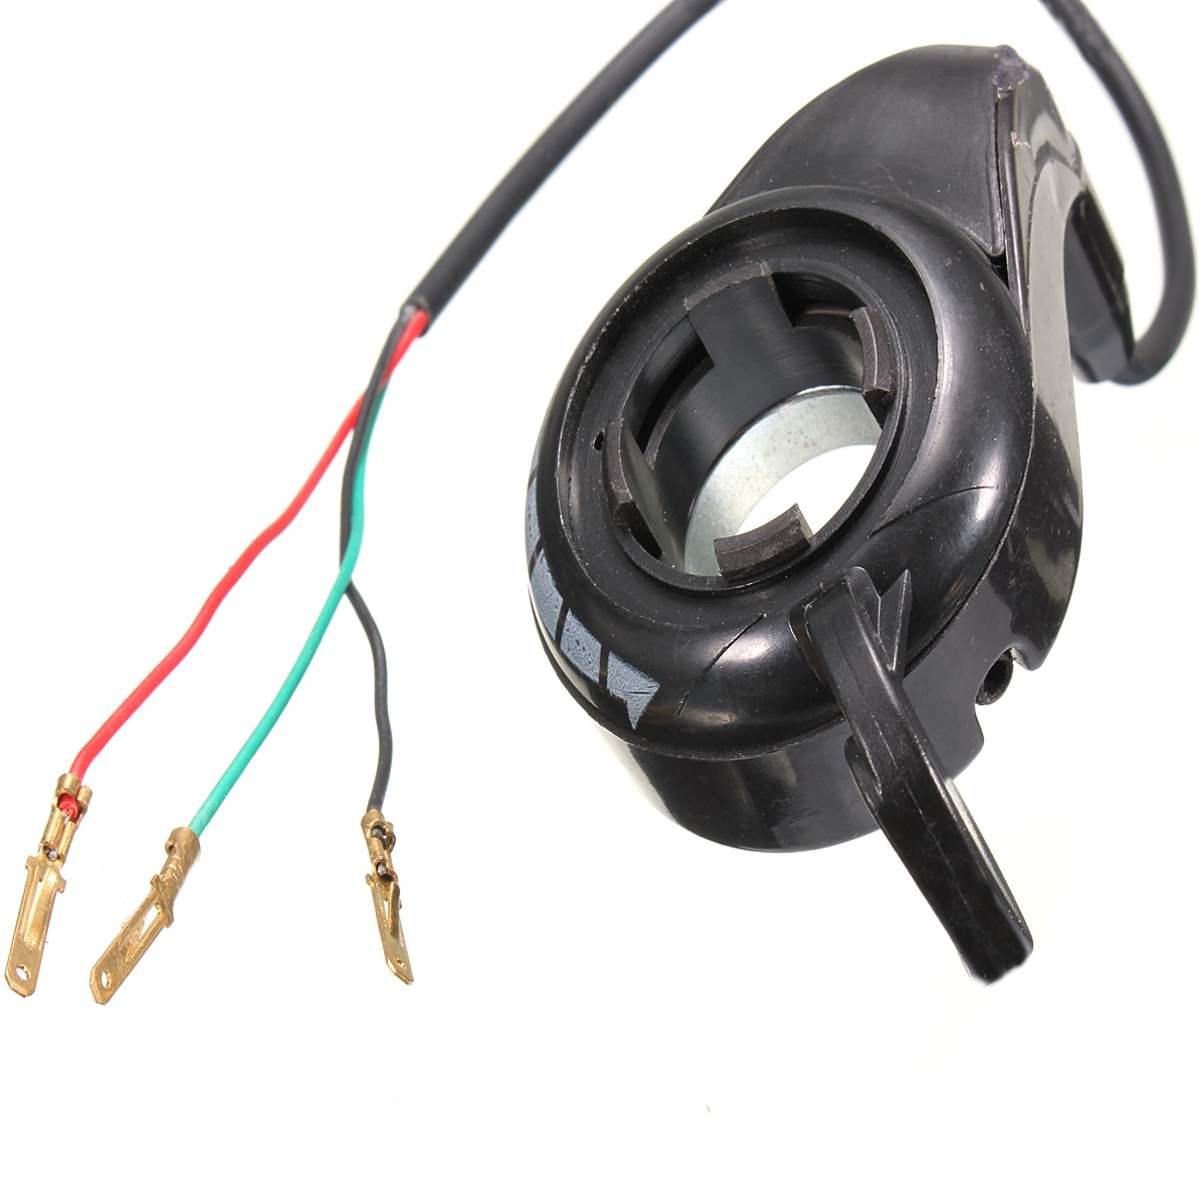 electric scooter throttle wiring diagram 300zx fuel sending unit universal bike kit thumb speed control e